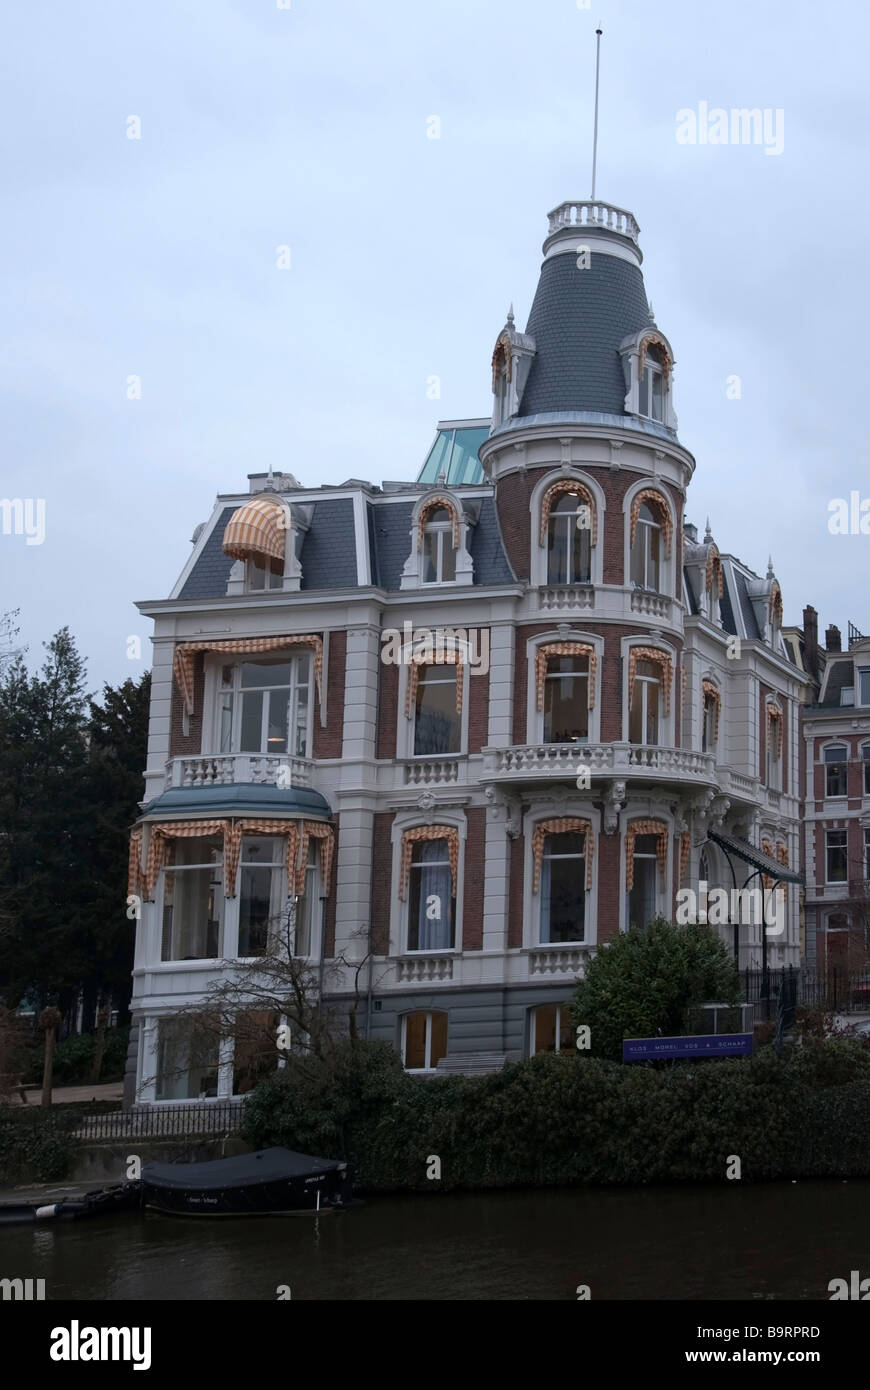 Typically Ornate Former Merchants House Amsterdam - Stock Image